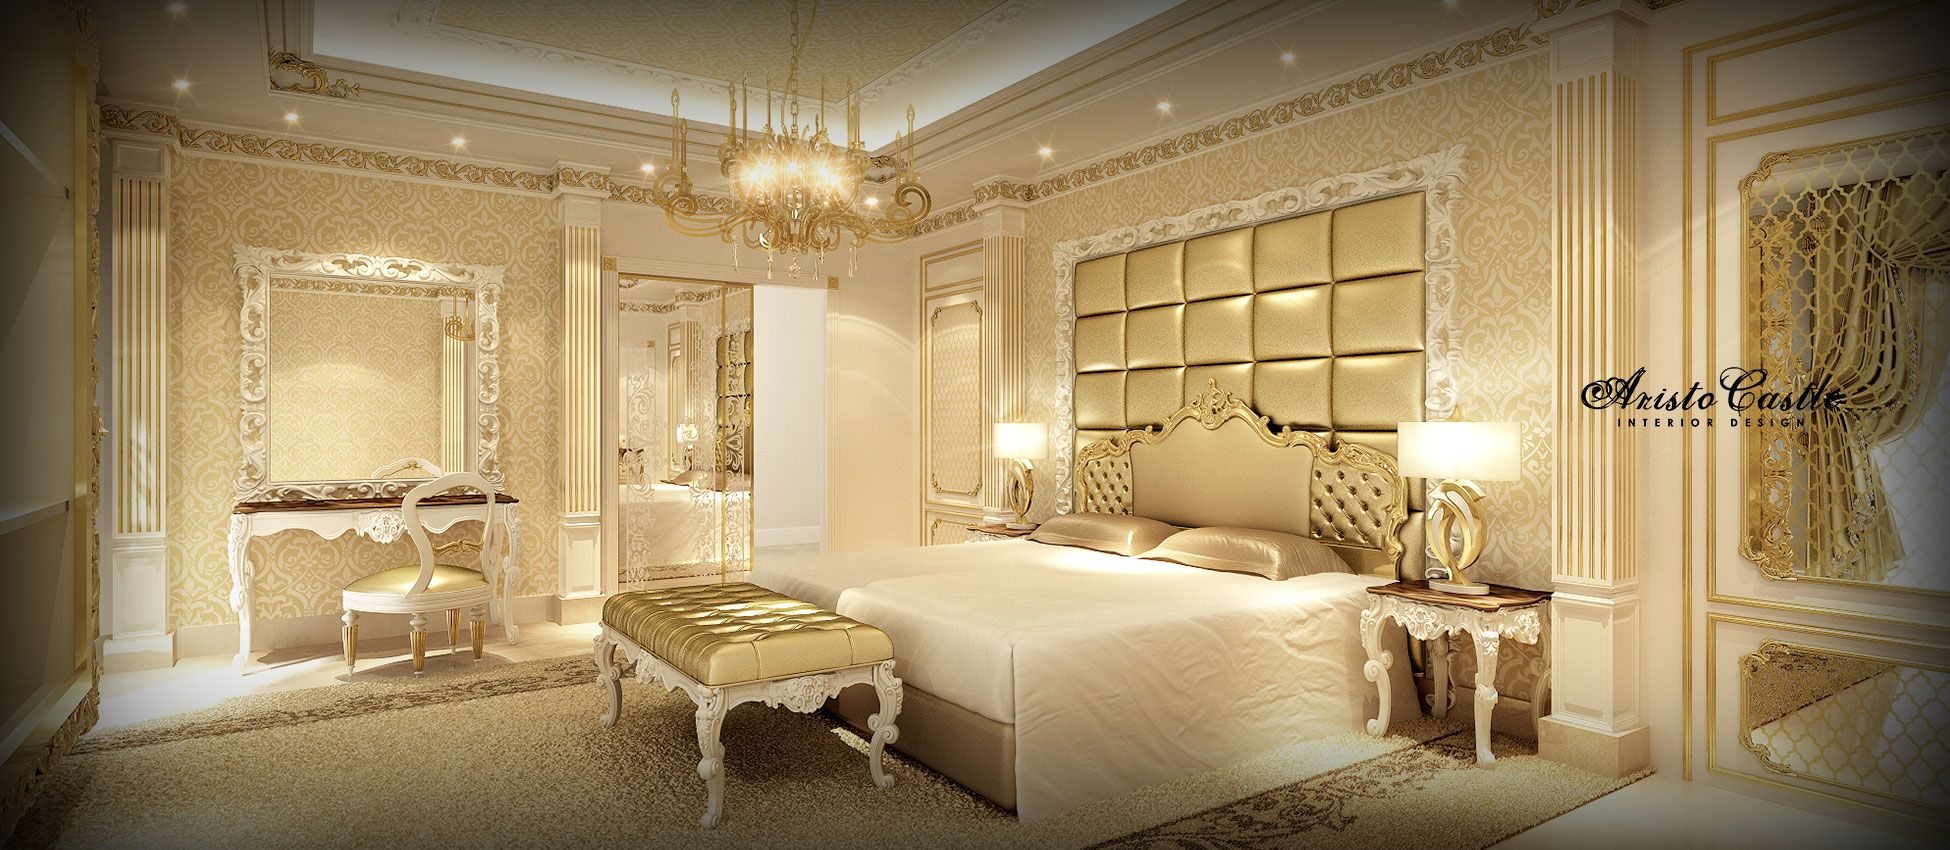 Dubai luxury interior design luxury master bedroom for Villa interior design dubai